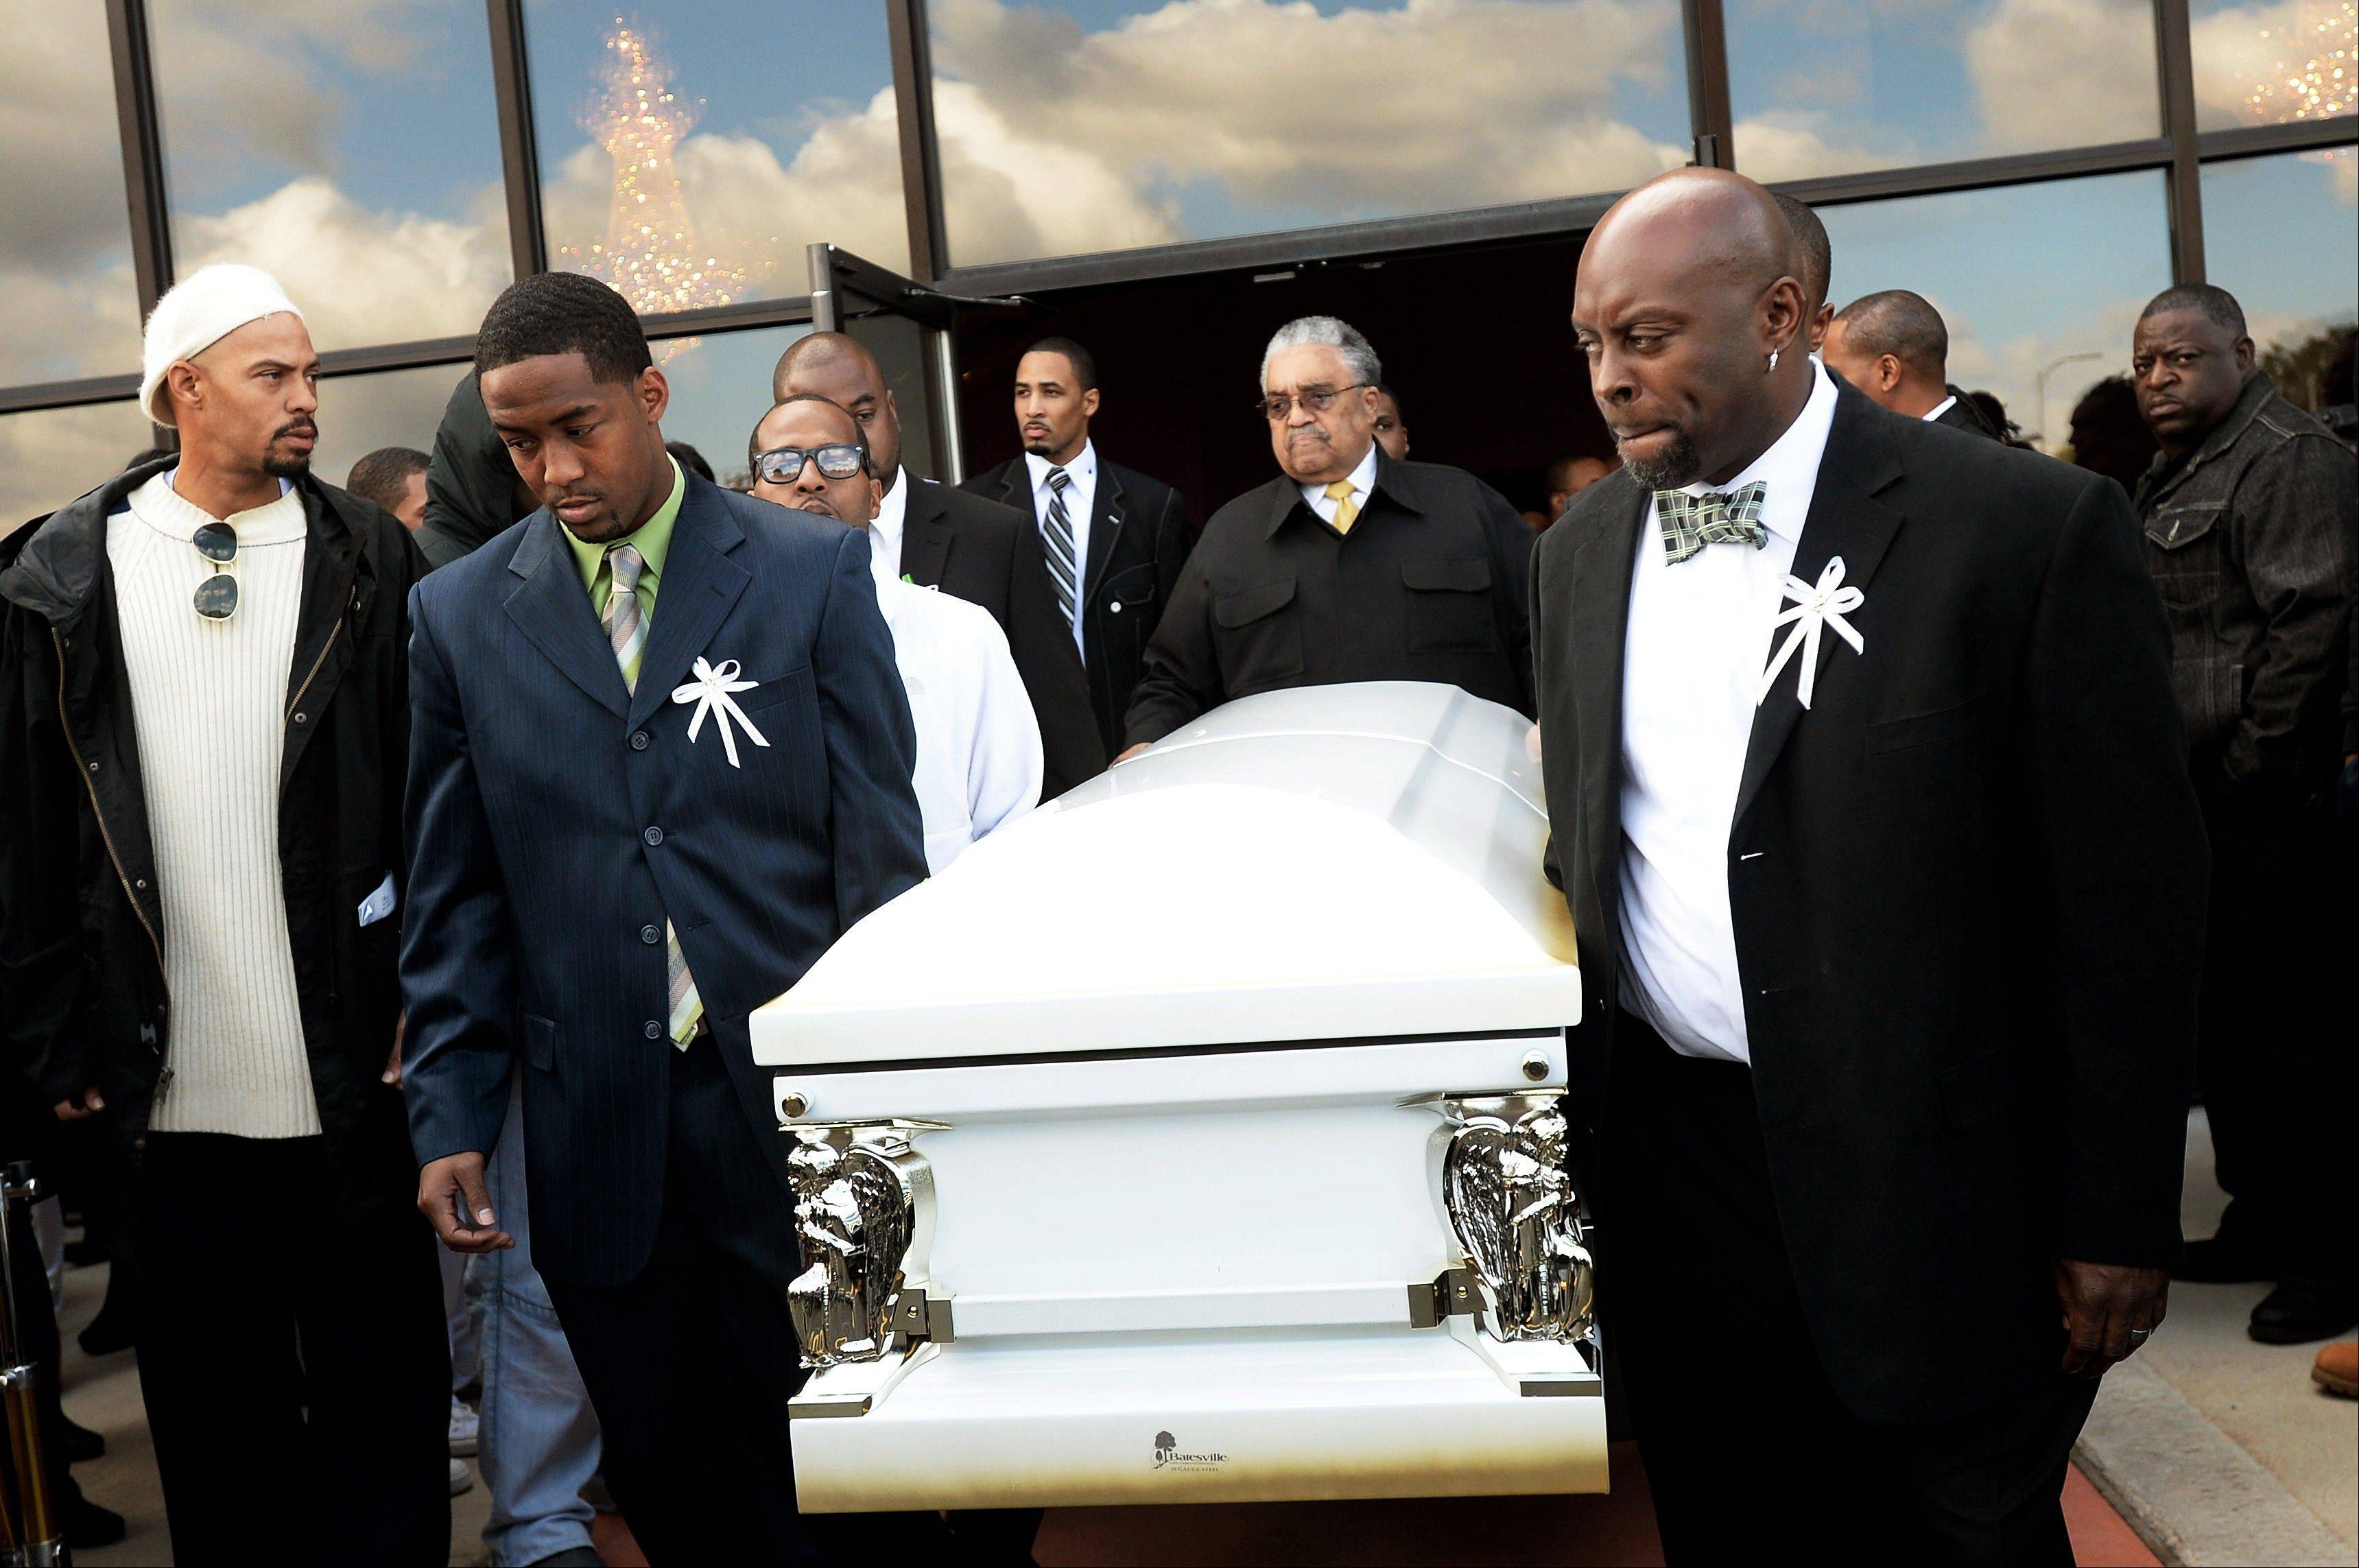 Pallbearers carry Eastern Michigan football player and Chicago native Demarius Reed's casket to a waiting hearse after his funeral at Holy Temple Cathedral in Harvey, Ill., on Saturday, Oct. 26, 2013. Reed was repeatedly shot Oct. 18 in what police say may have been a robbery. (AP Photo/AnnArbor.com, Melanie Maxwell) LOCAL TV OUT; LOCAL INTERNET OUT; ONLN OUT; IONLN OUT